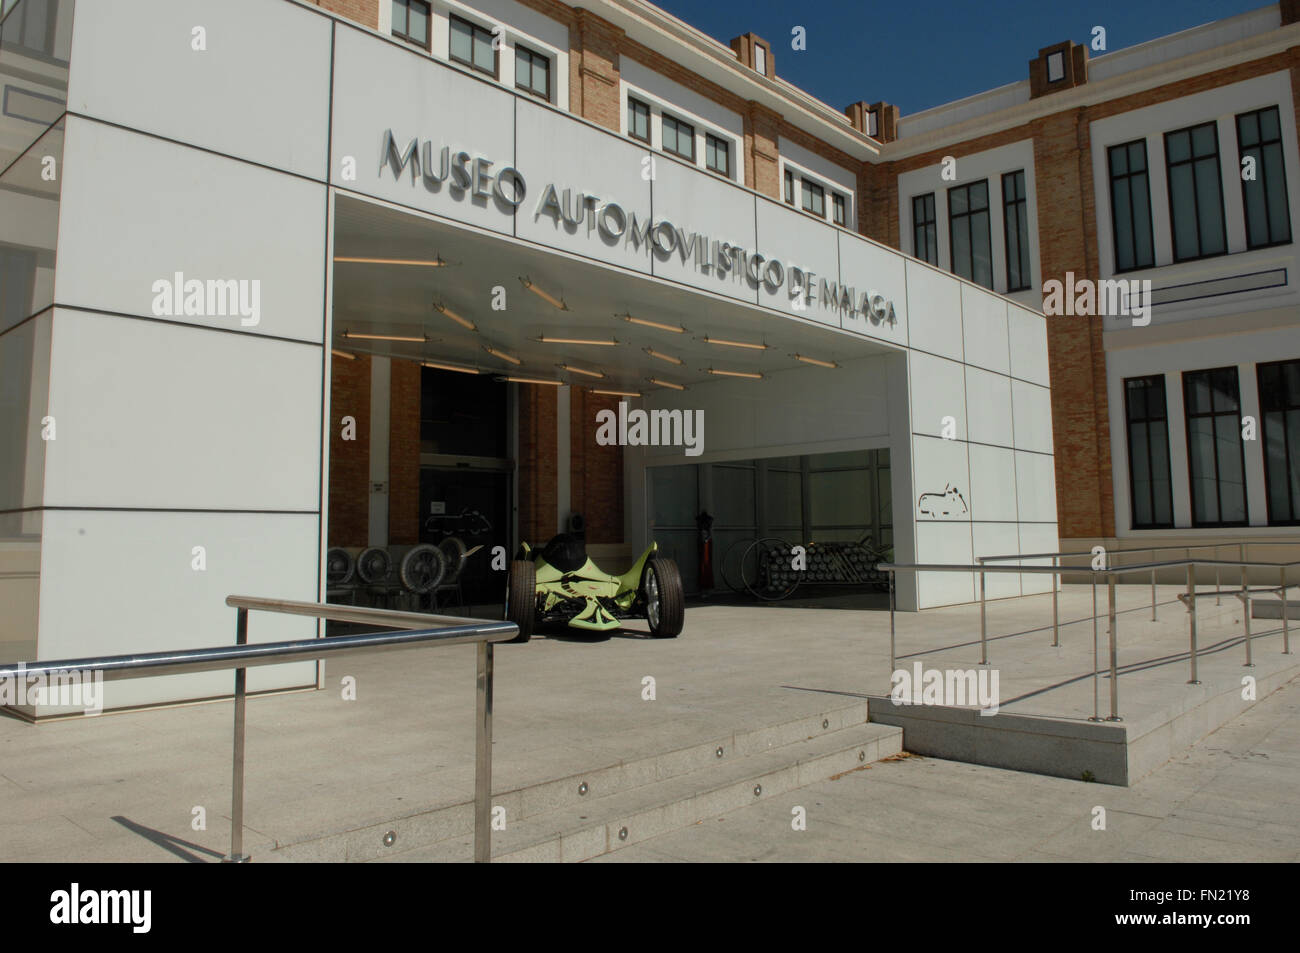 A picture of the entrance into the car museum, Malaga, Spain - Stock Image